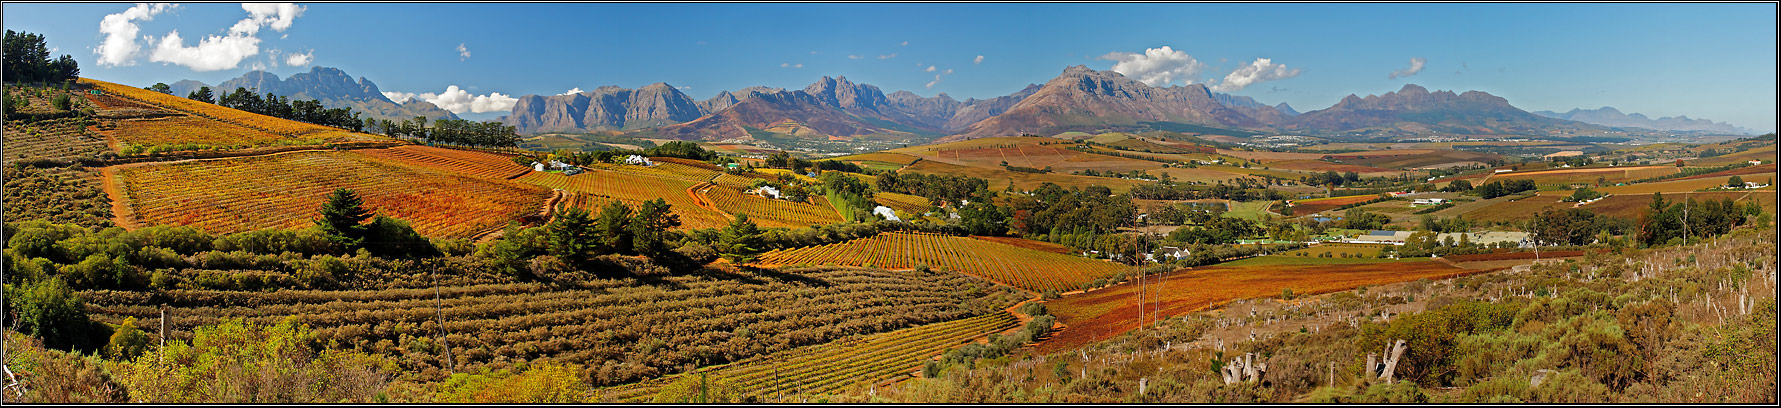 Herbst in den Winelands